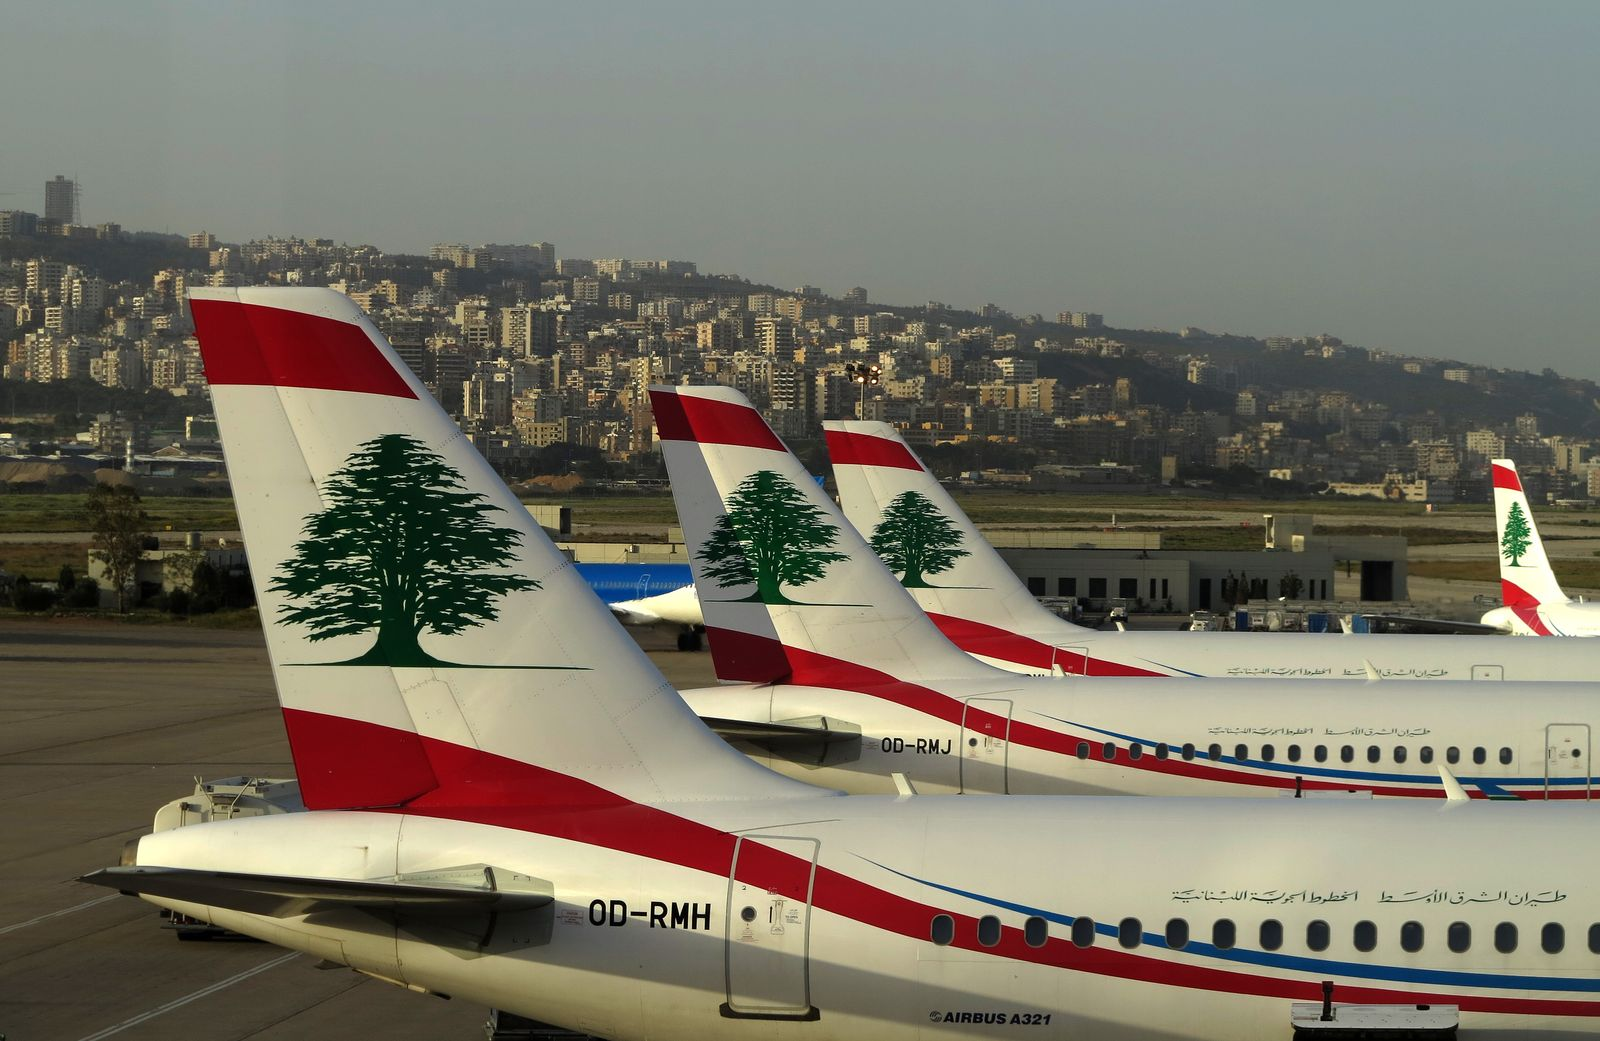 Middle East Airlines / Beirut